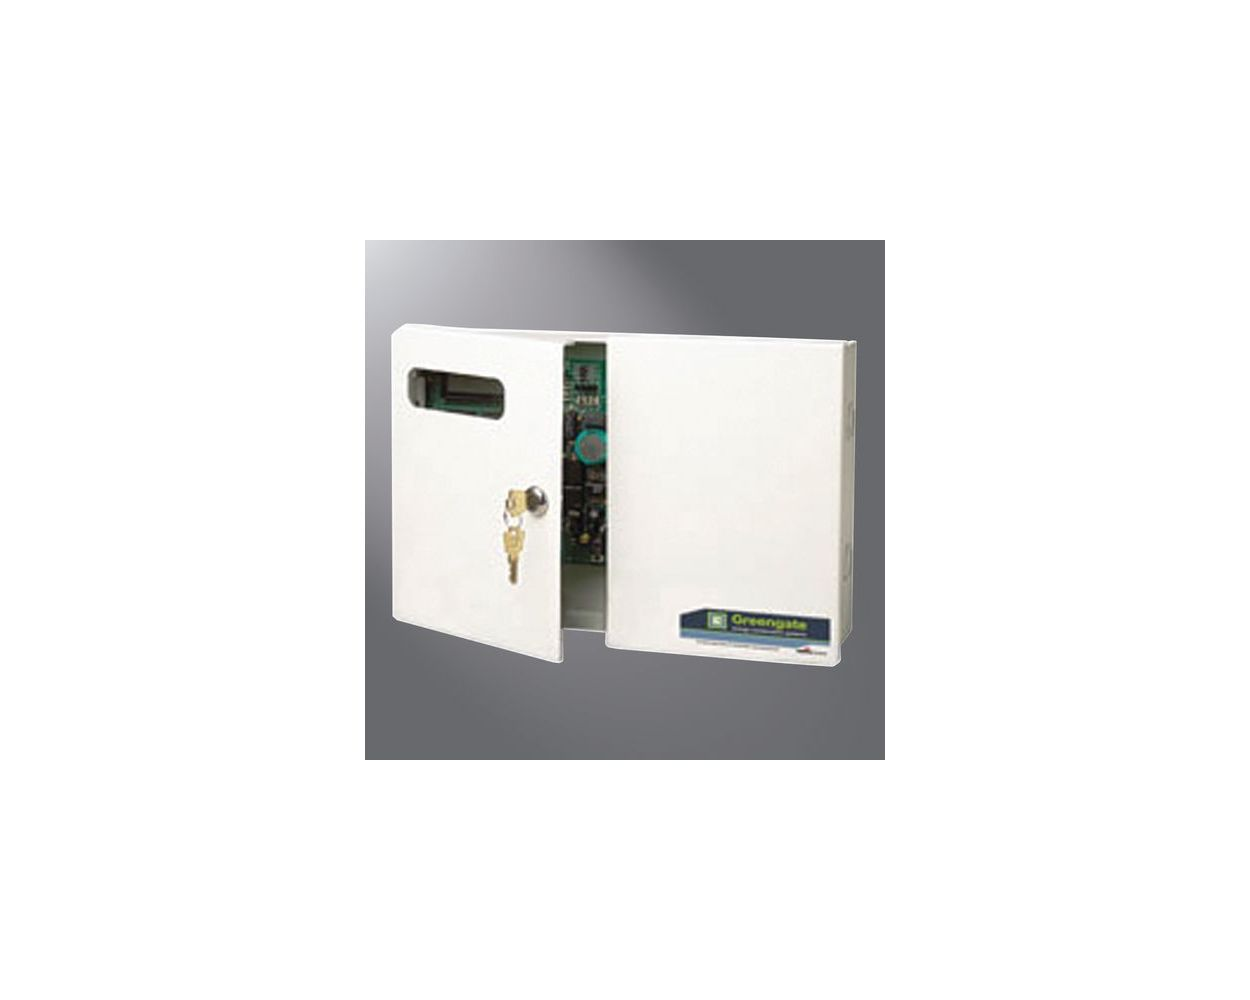 cooper greengate litekeeper 4 stand alone lighting control panel 277 vac normally open relays